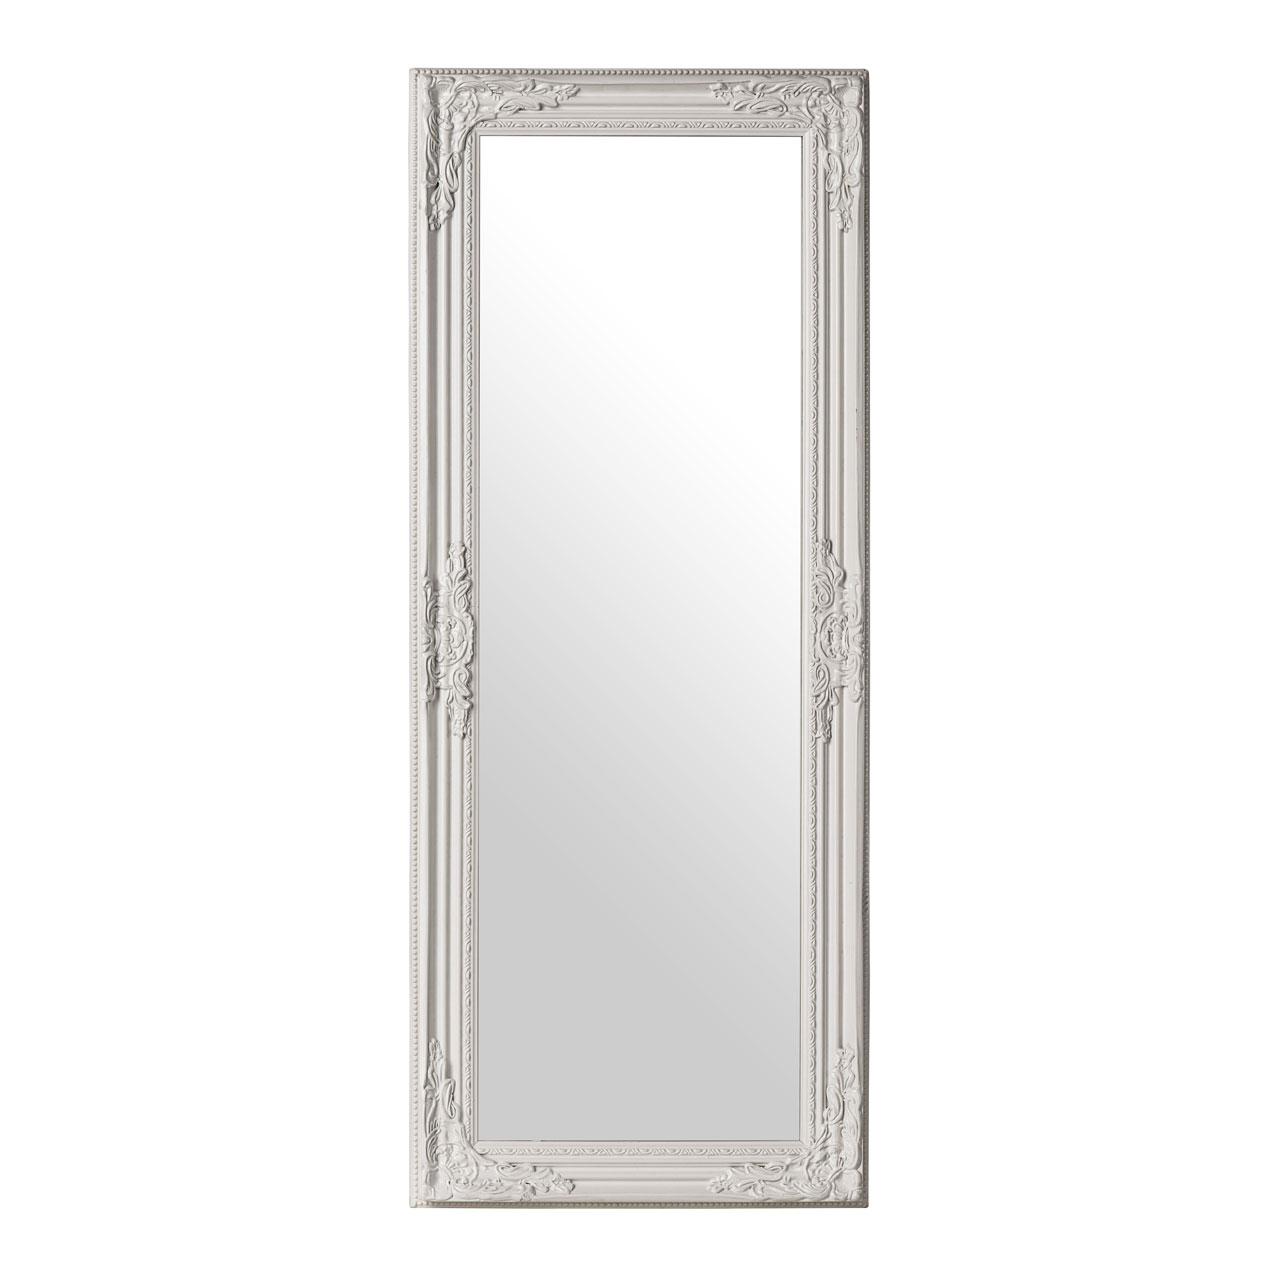 Premier chic vintage large wall mirror white finish for Full length wall mirror